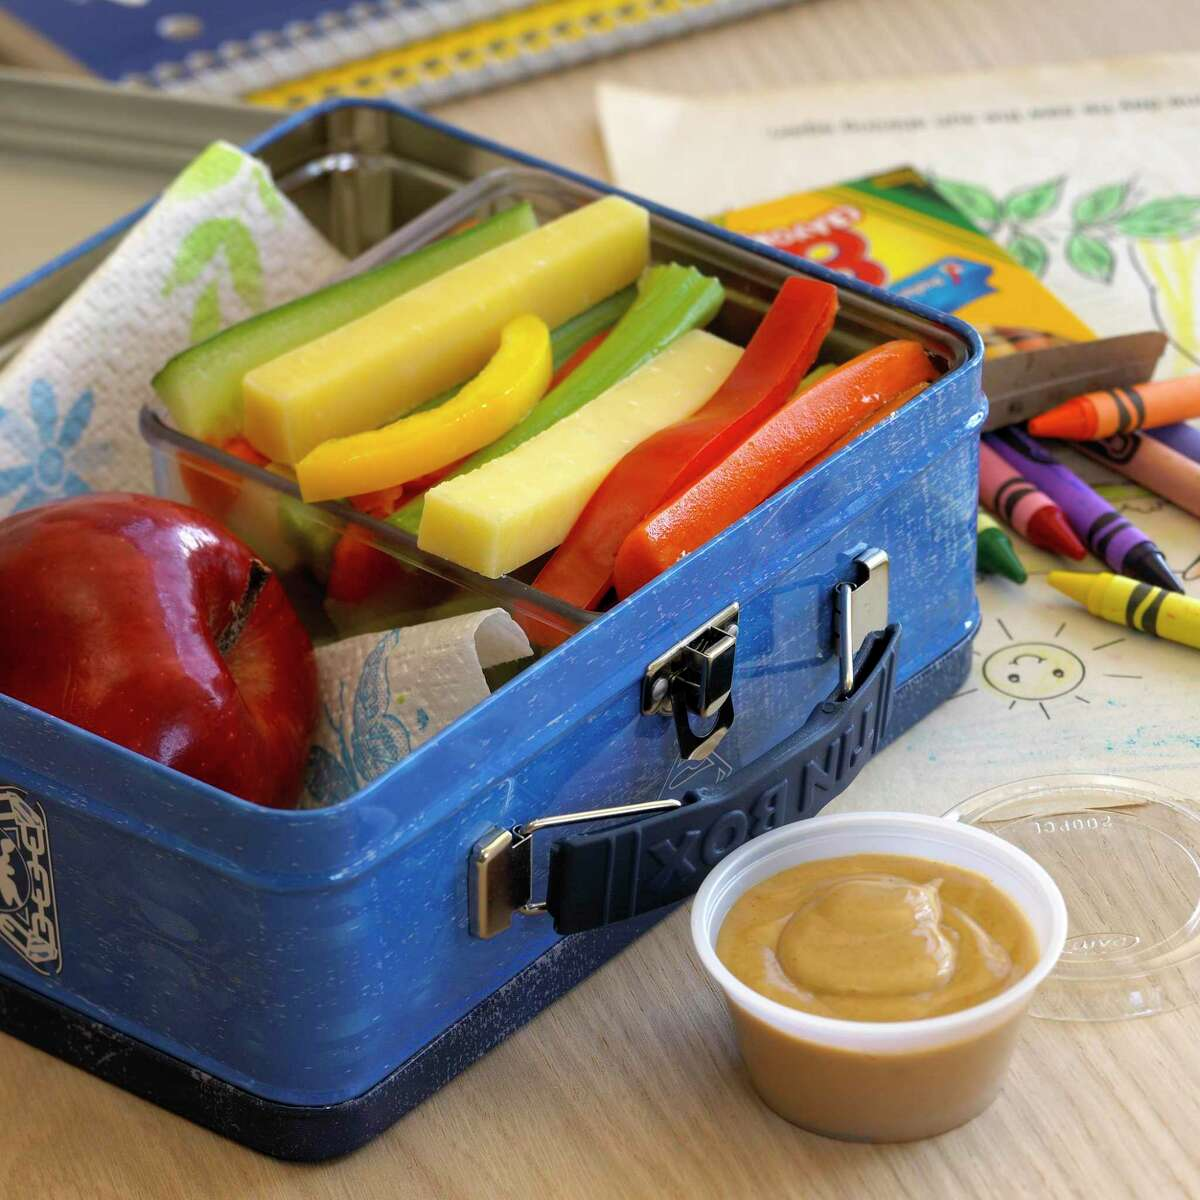 Move over healthy lunch box, here comes something with ... higher trans fat. Proposed changes to federal nutrition standards for school meals don't appear to be about health.